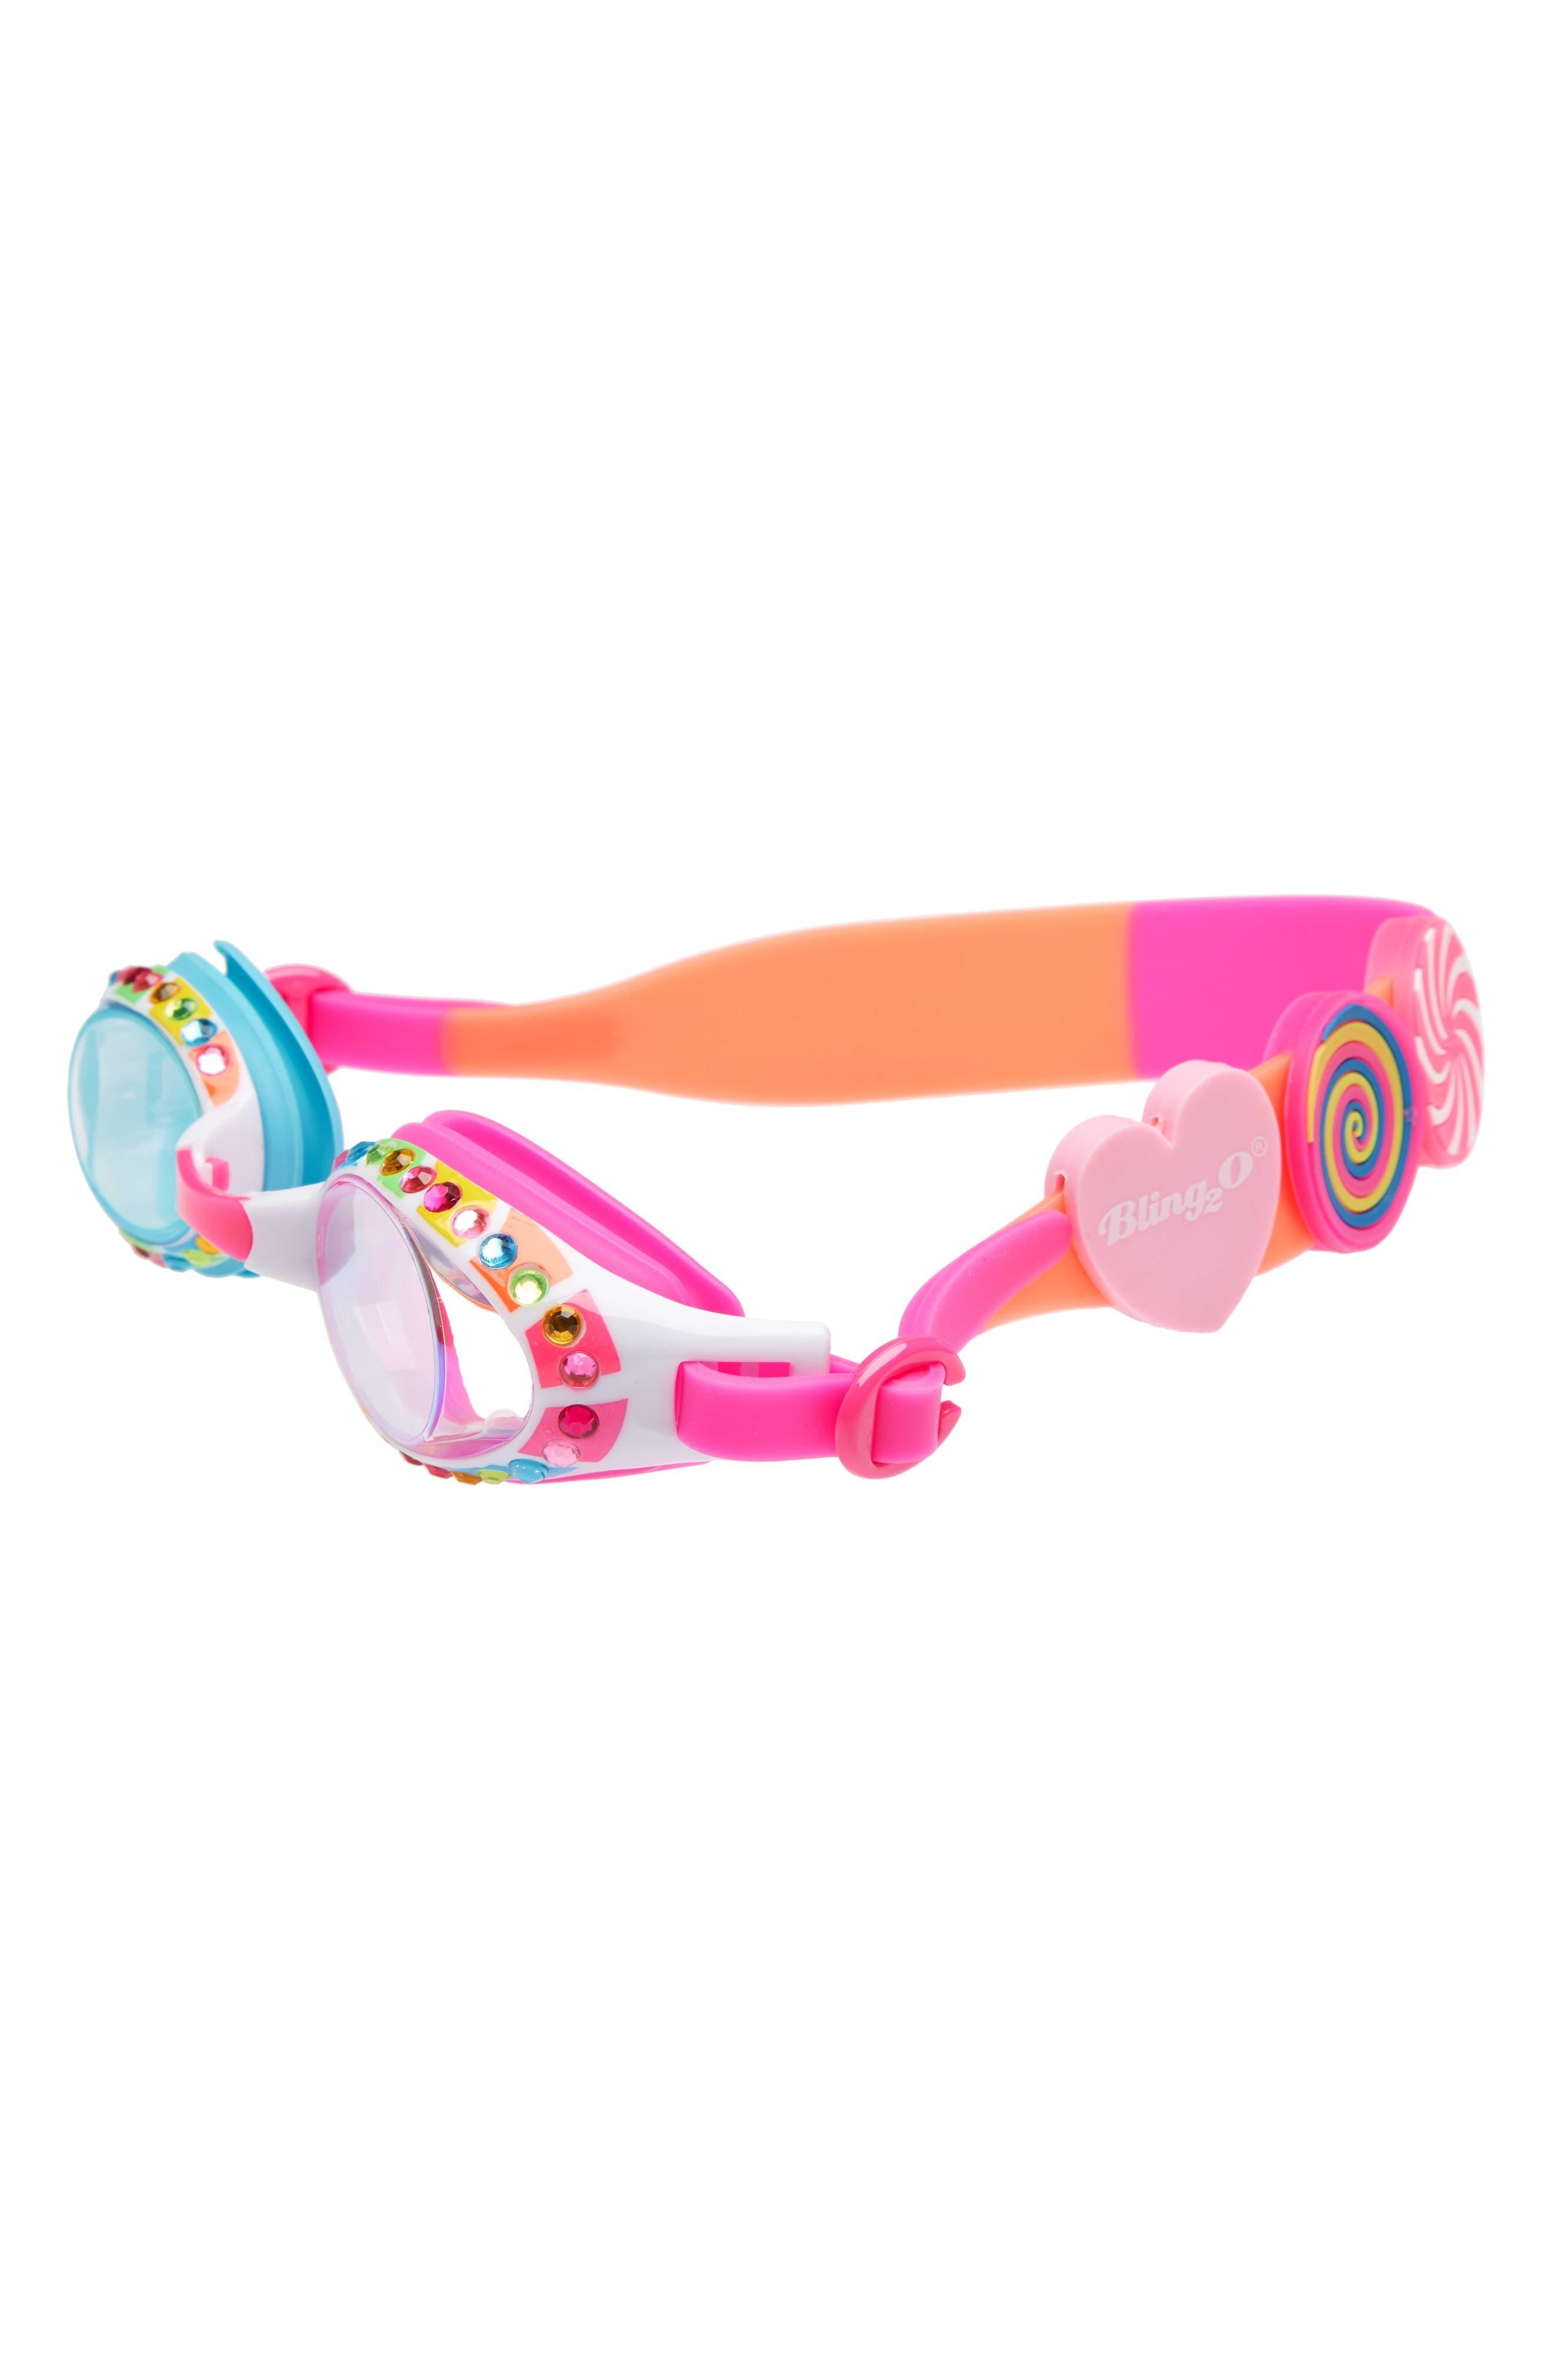 Alternate Image 1 Selected - Bling2o Lolli Poppins Swim Goggles (Girls)